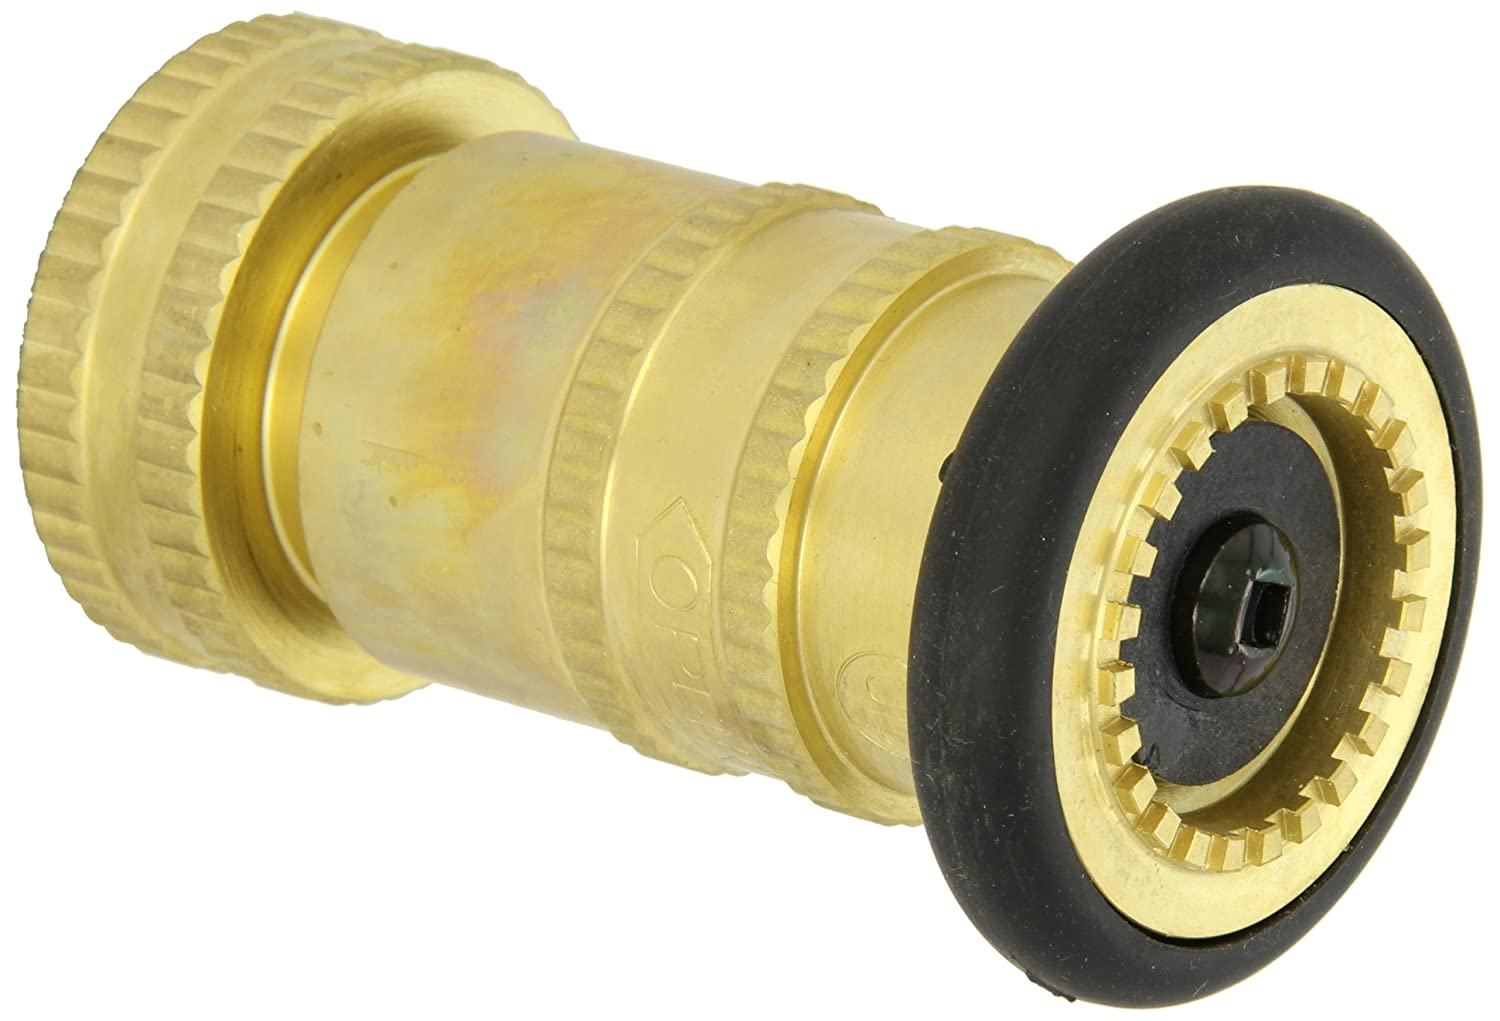 Moon 7171-1521 Brass Fire Hose Nozzle, Industrial Fog, 85 gpm, 1-1/2' NH 1-1/2 NH Moon American